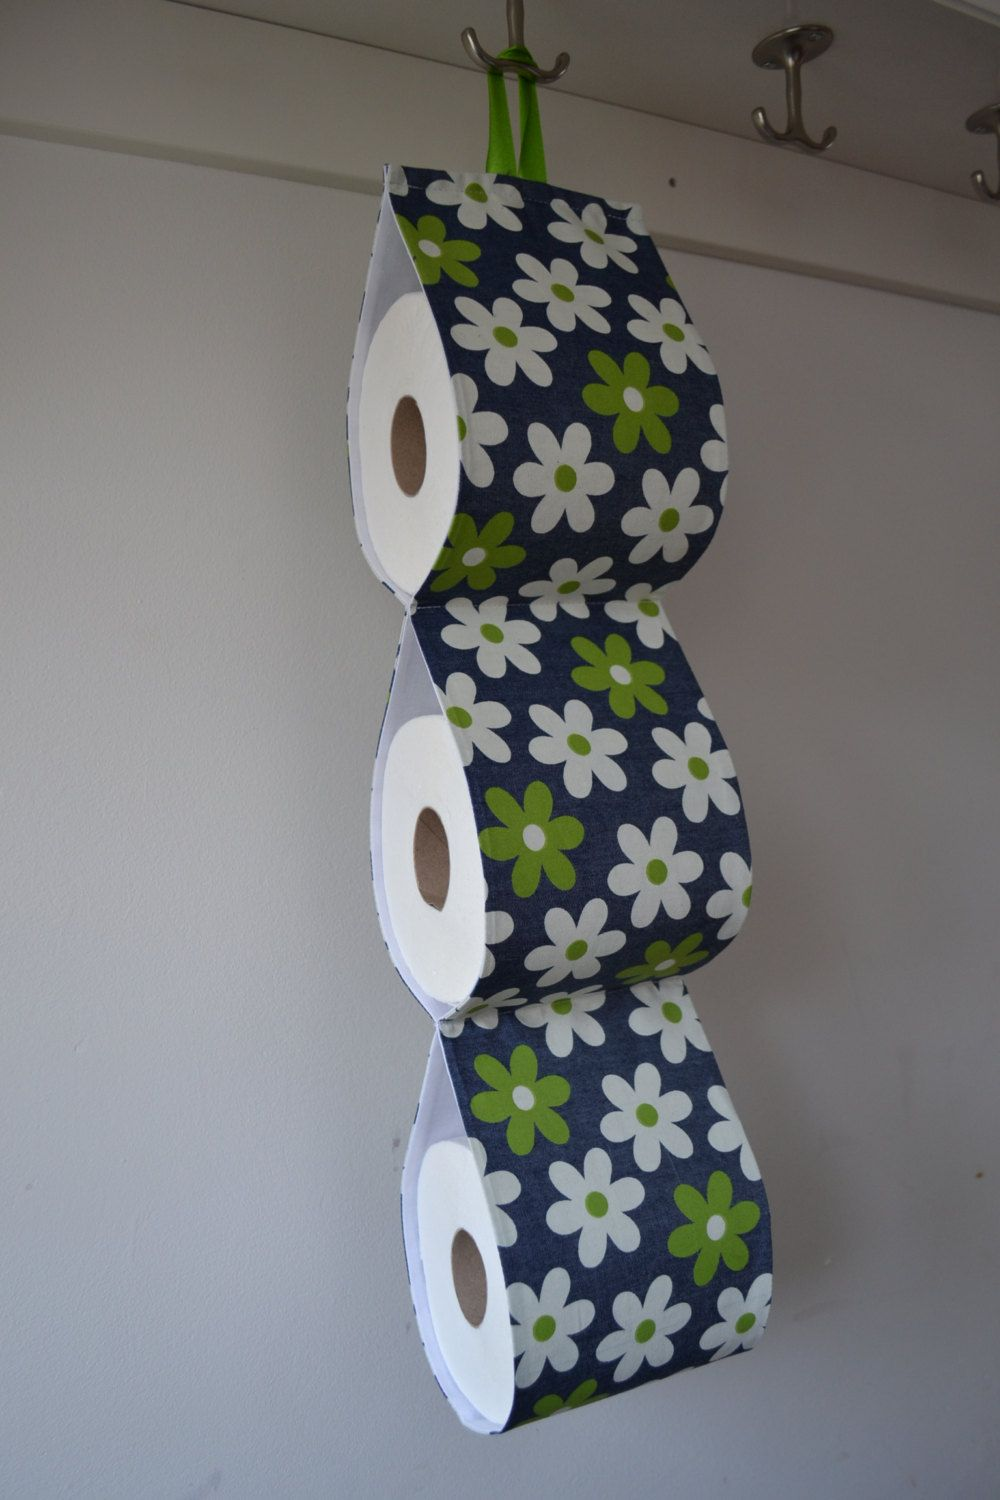 Fabric Decorative Toilet Paper Holder Storage At The Wall 3 Rolls 100 Cotton Look Like Denim Print With White And Green Flowers Toilet Paper Holder Toilet Paper Toilet